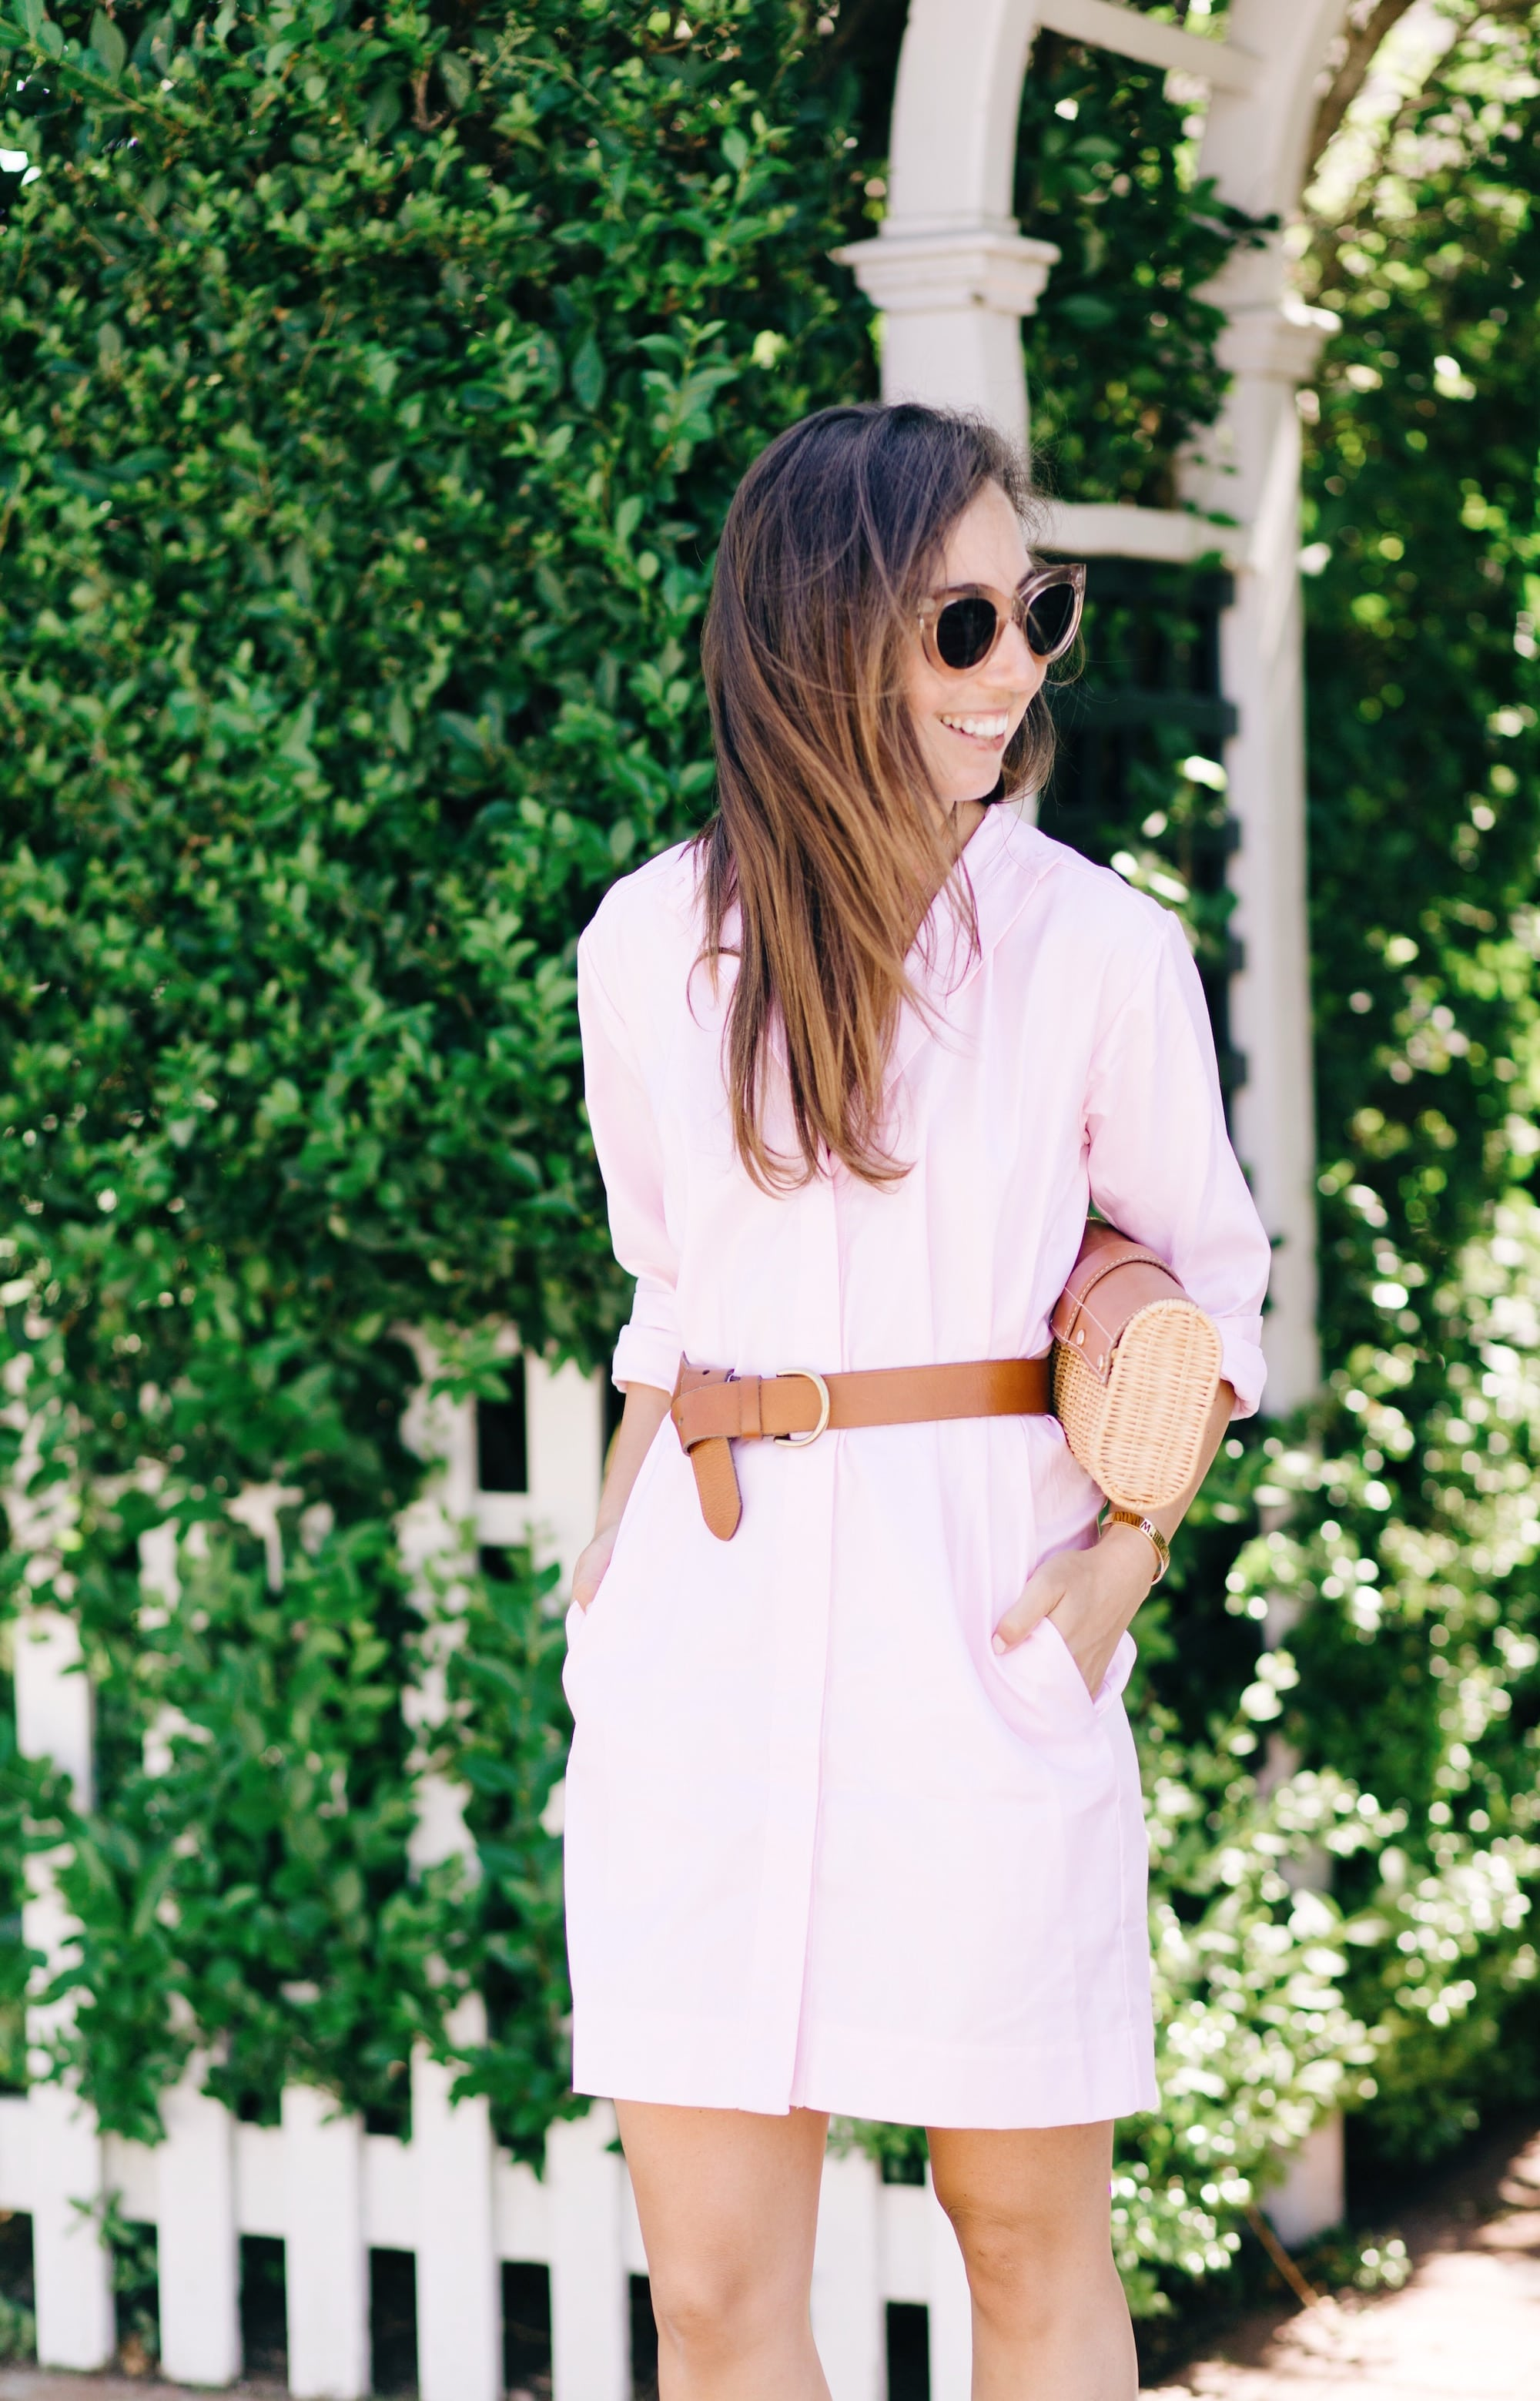 Celine Sunglasses and Pink Shirtdress